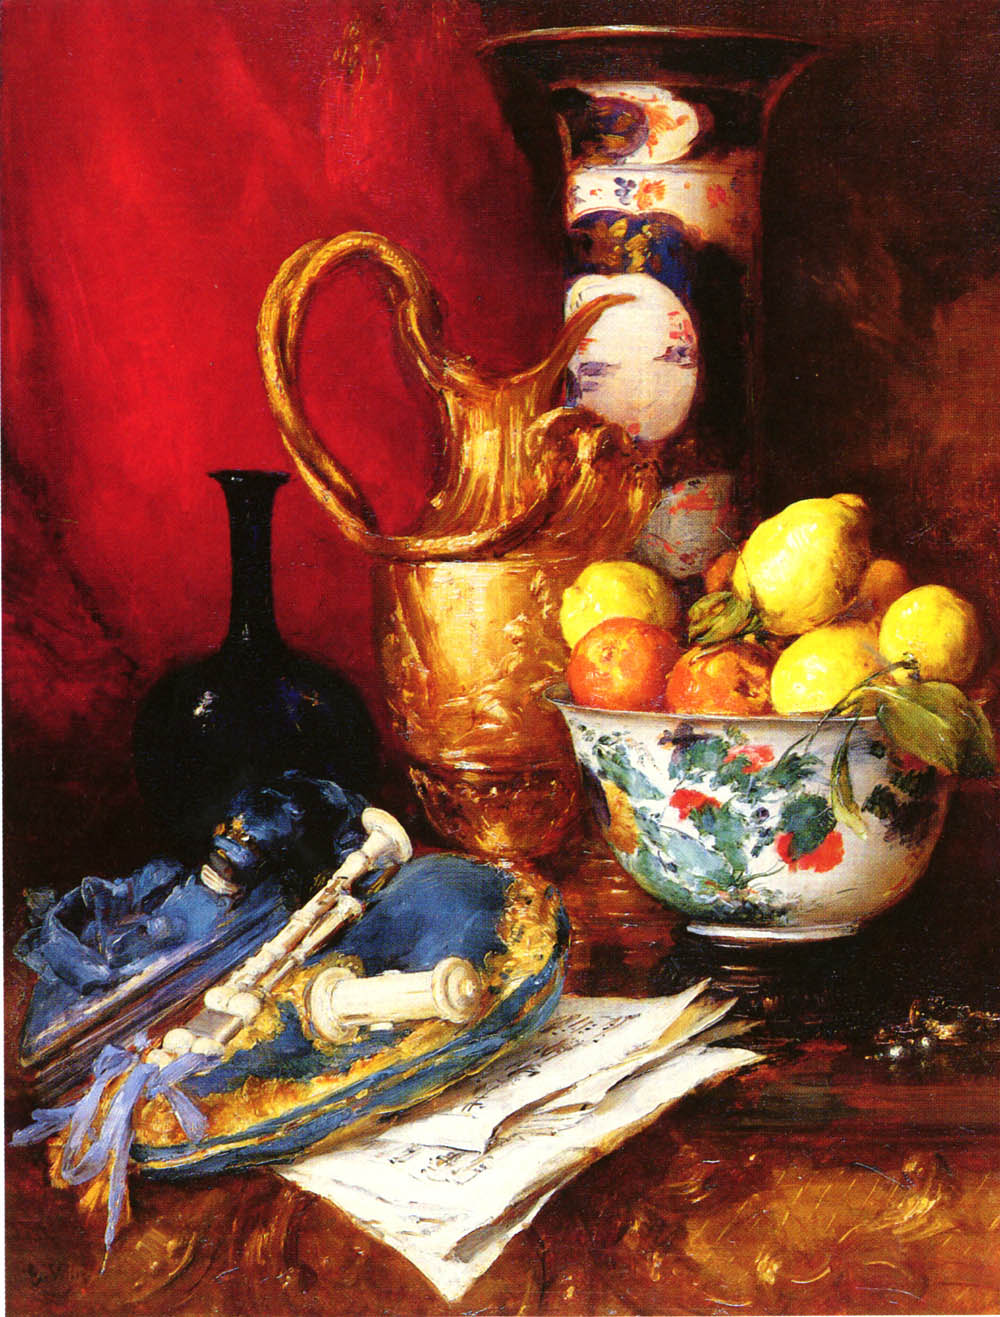 A Still Life with a Bowl of Fruit :: Antoine Vollon - Still-lives with fruit ôîòî